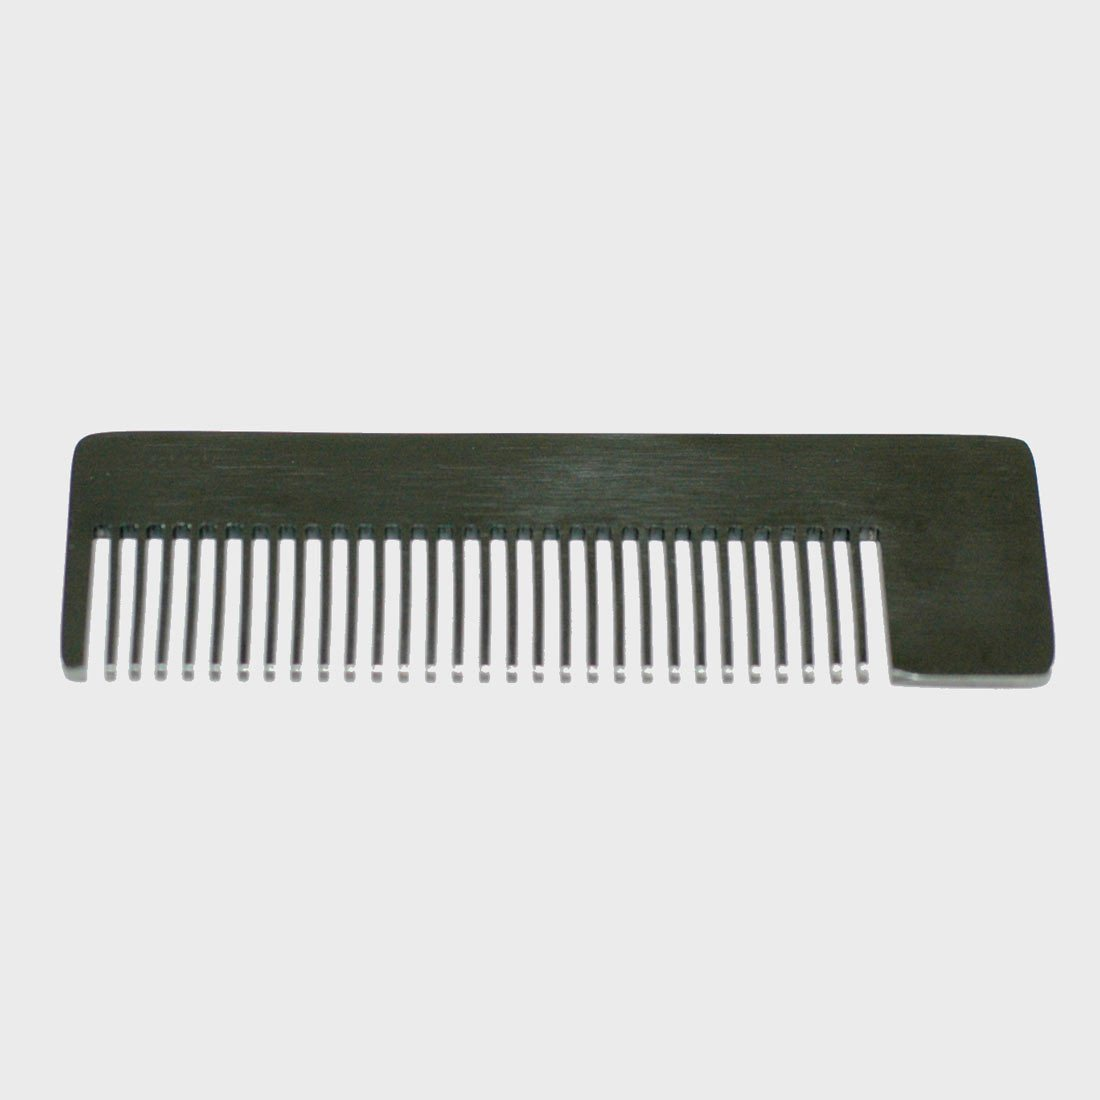 Chicago Comb Model No. 4 Black